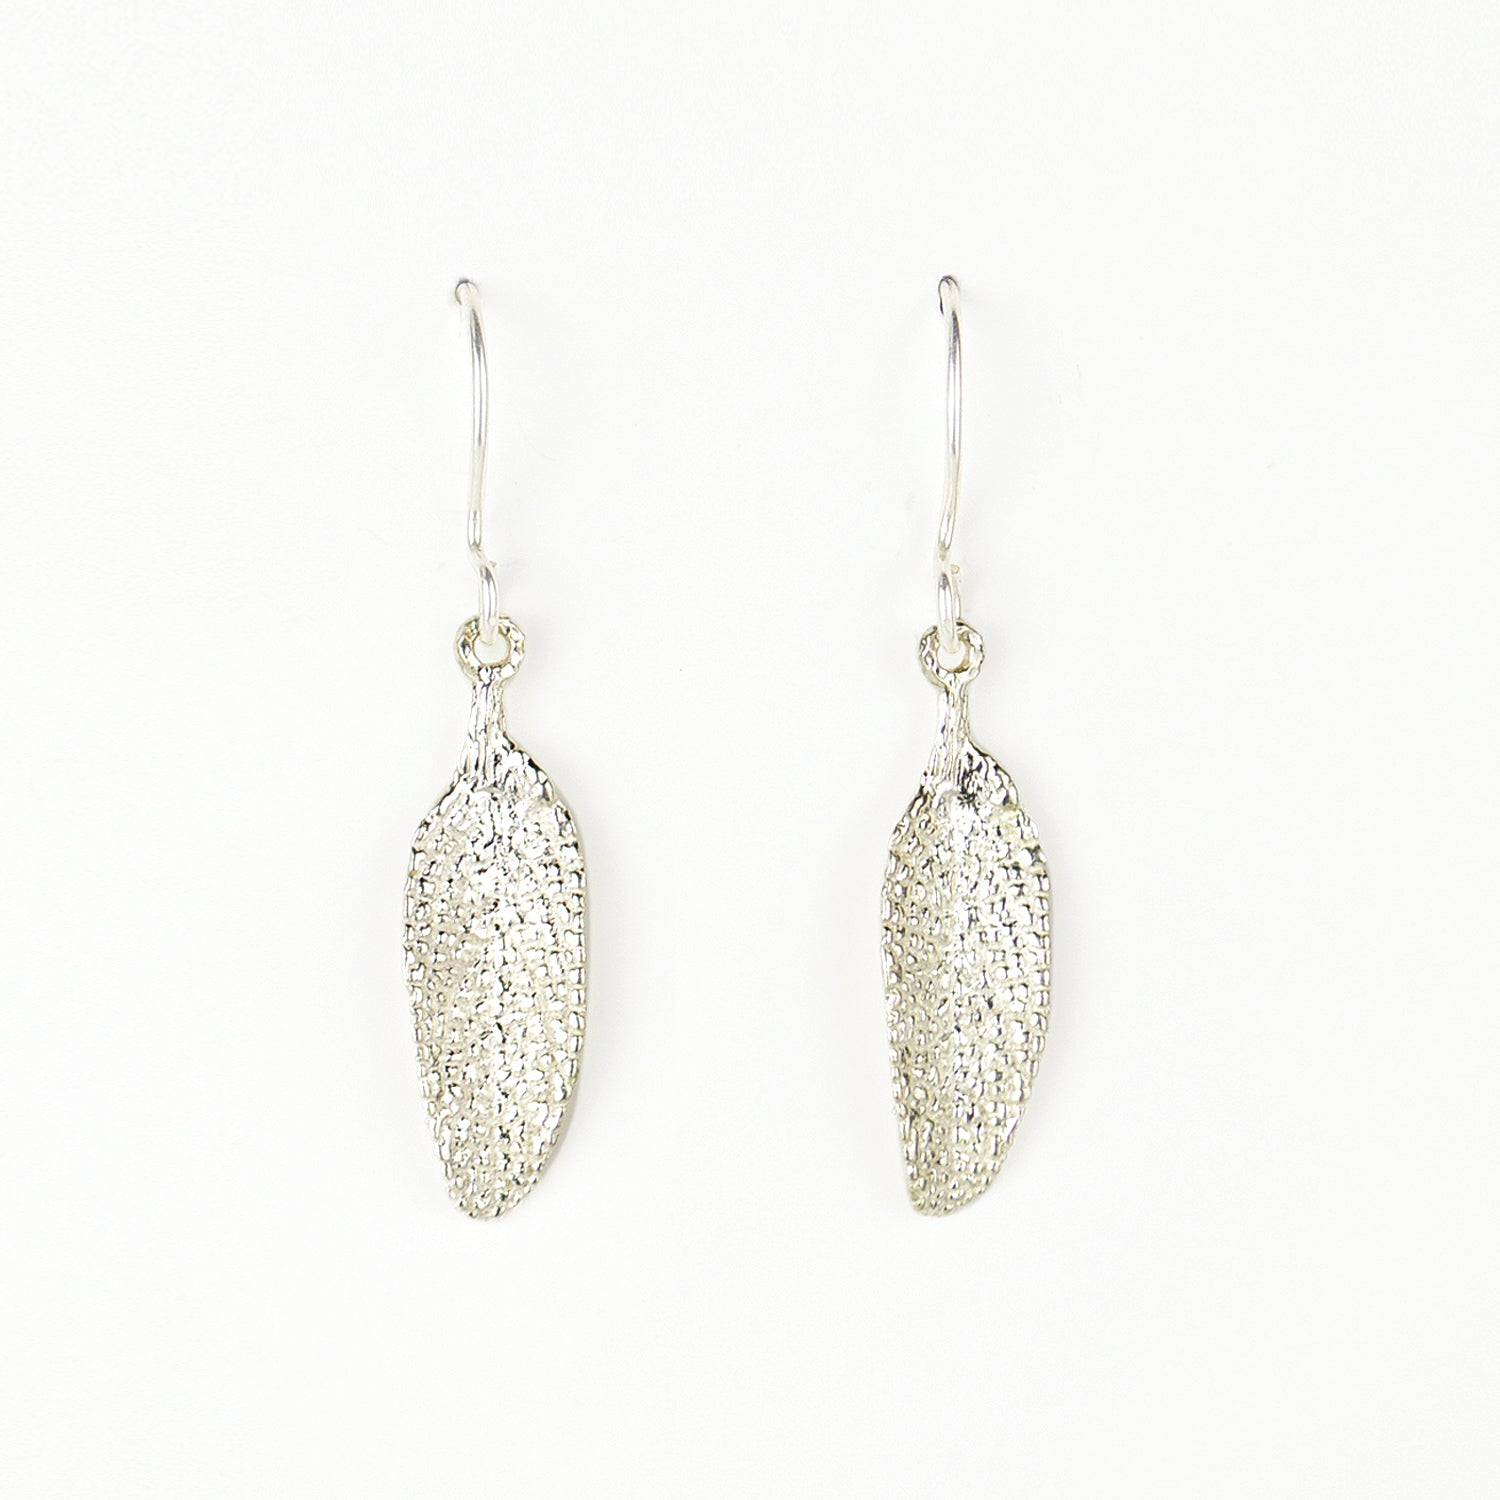 silver sage leaf earrings on plain white background. incredible detail